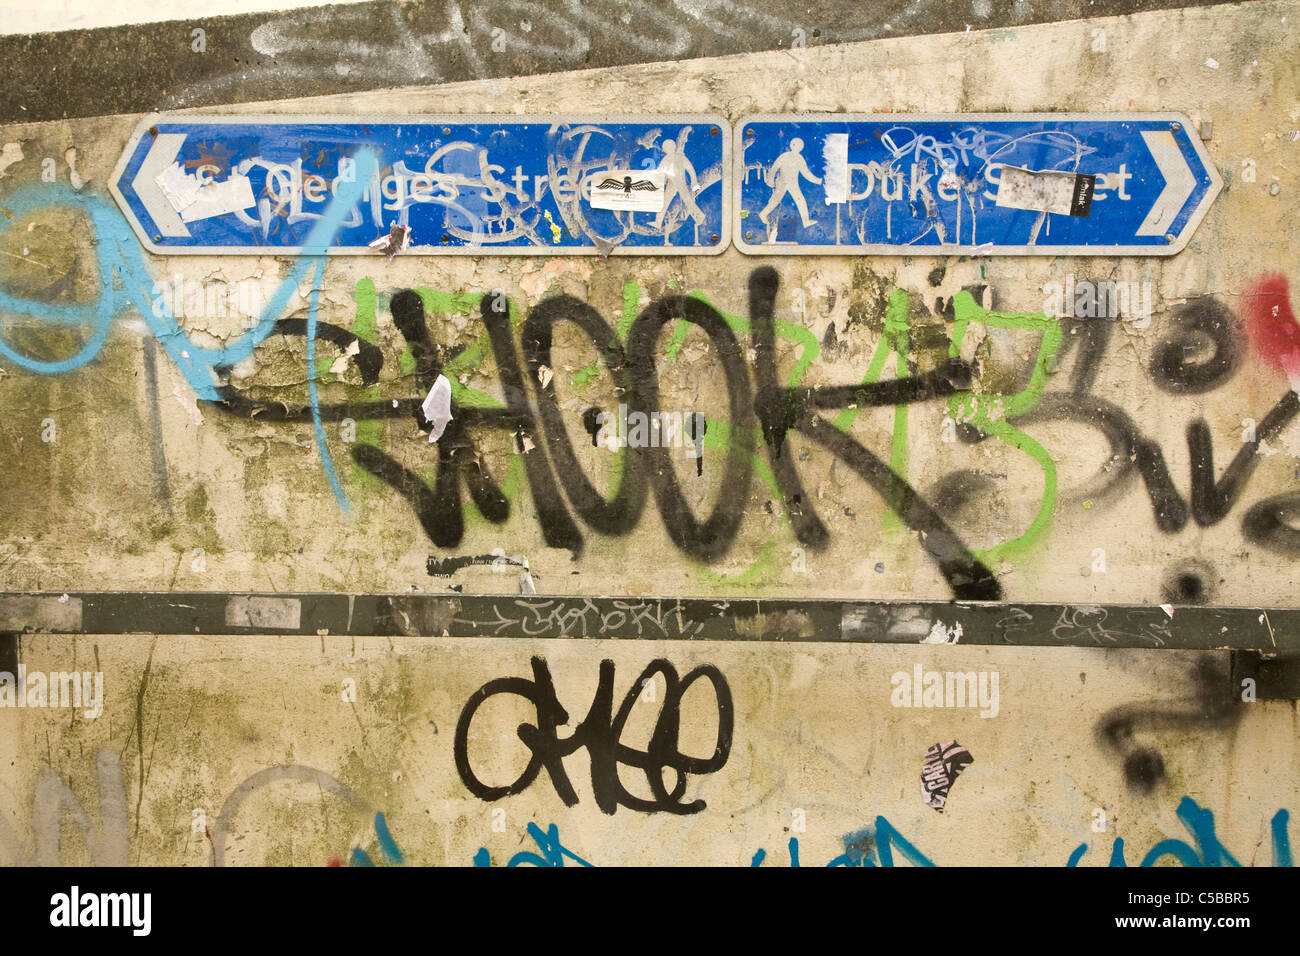 Graffiti on concrete walls and street signs norwich england stock image